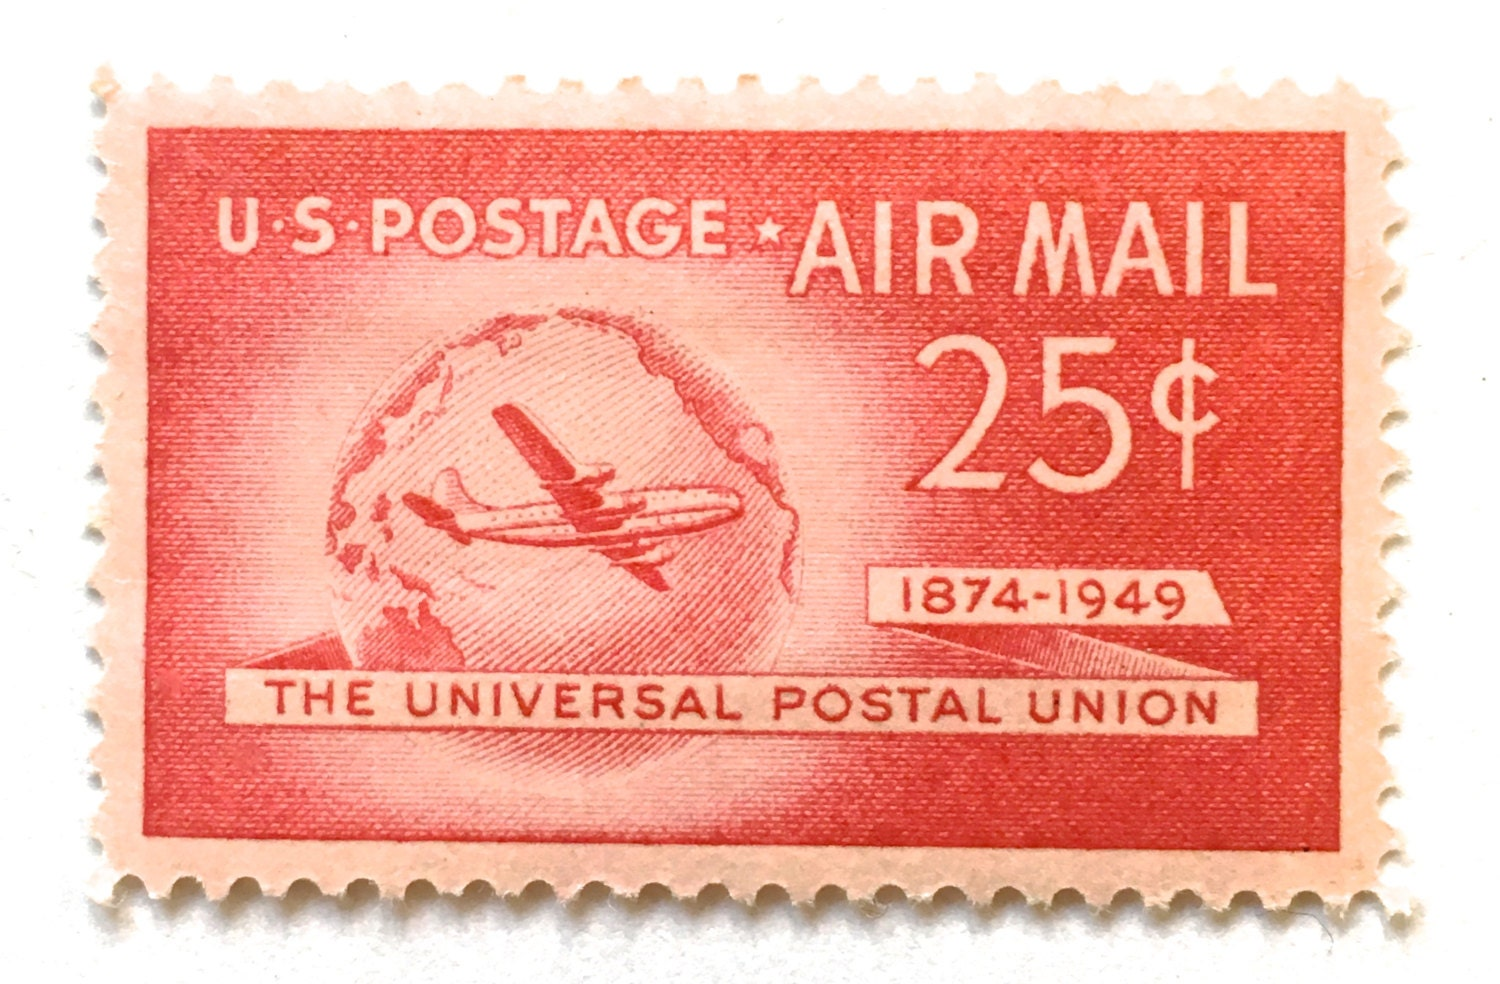 10 Unused Vintage 1949 Air Mail Postage Stamps // 25 Cent Red | Etsy